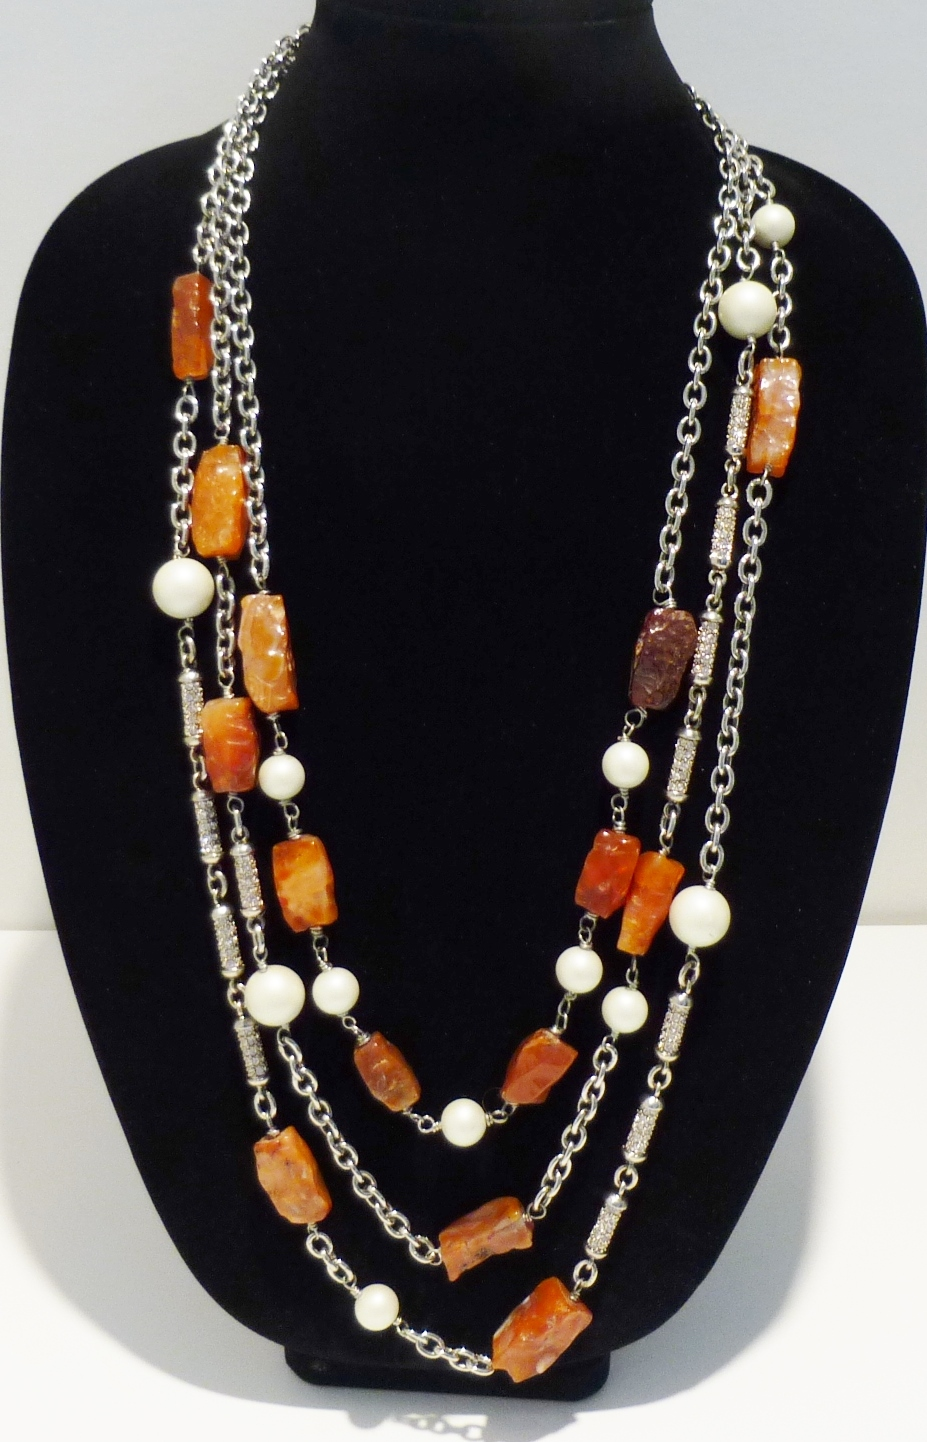 OUTSTANDING! St. John's Couture Necklace